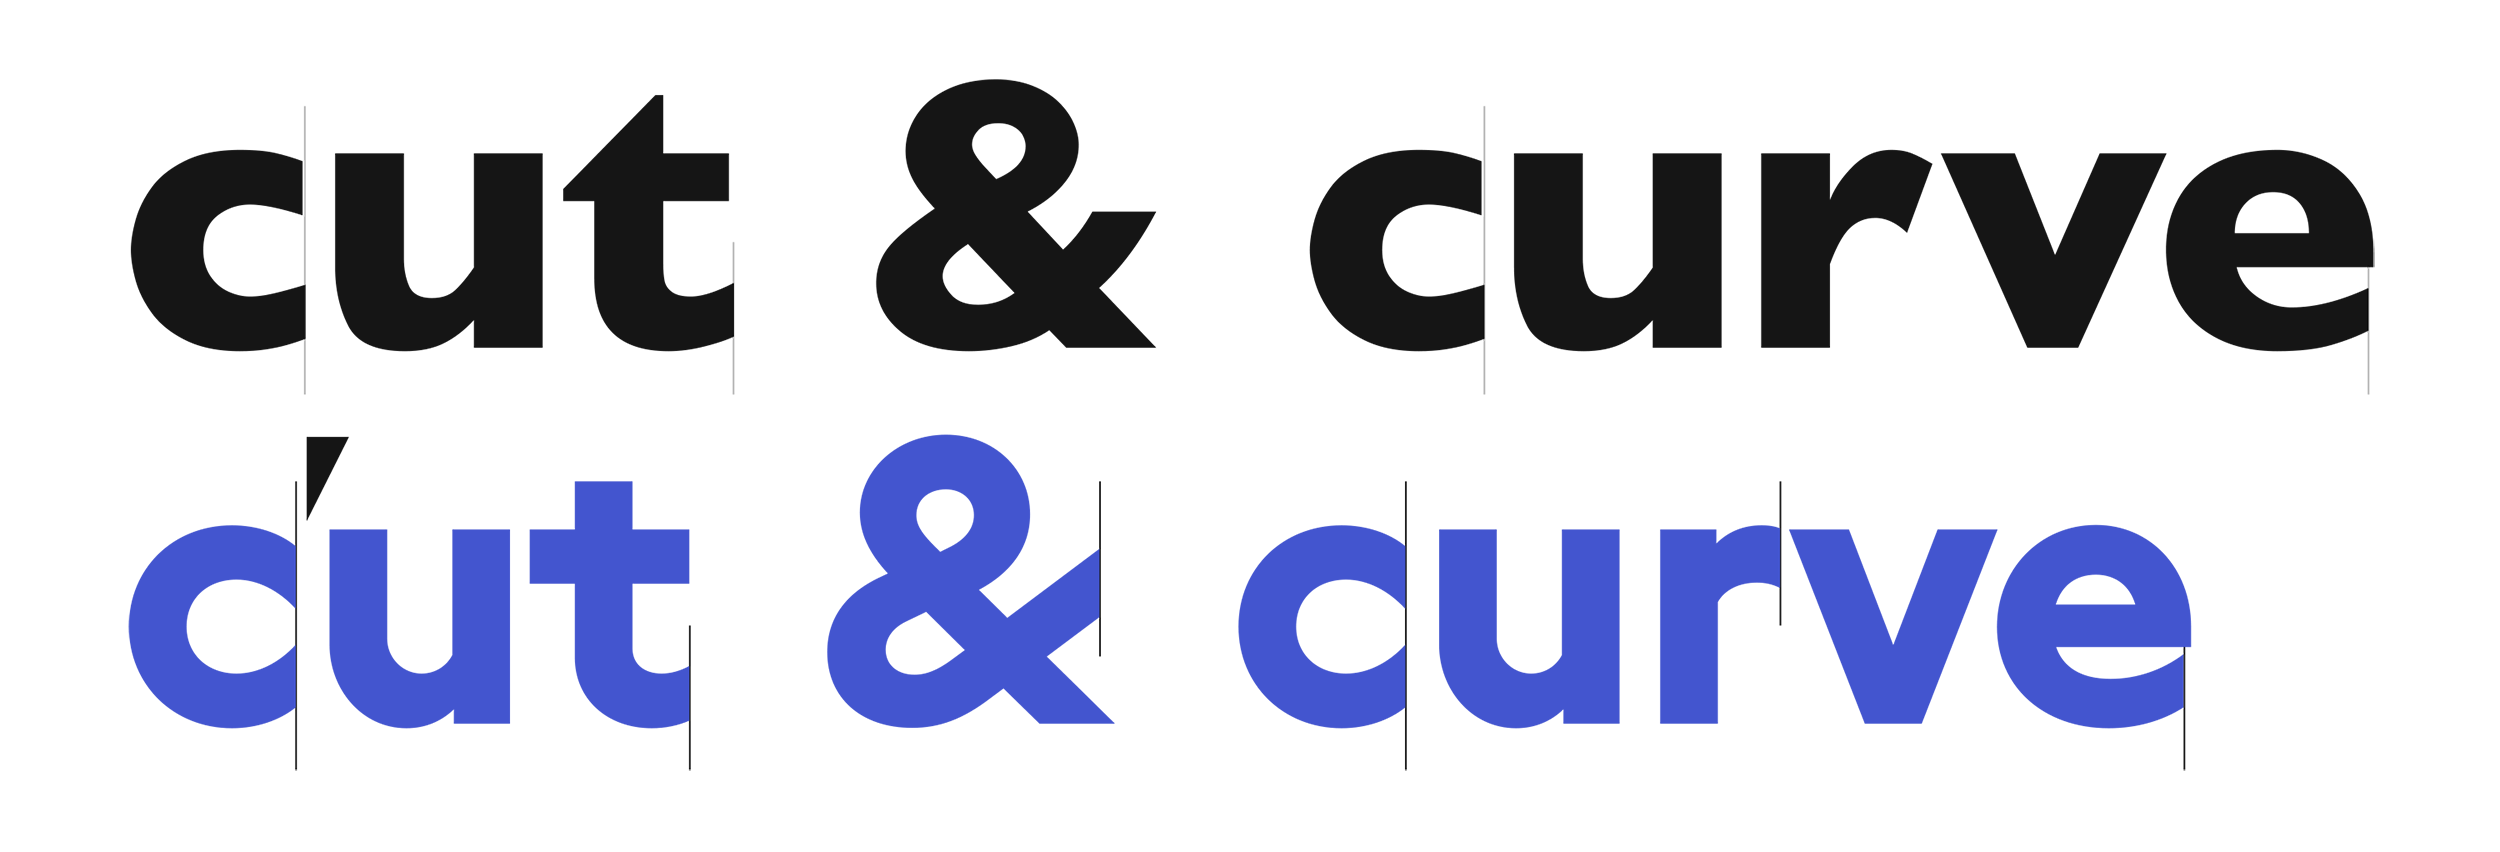 Type Mates Grato Gratimo Classic Grotesk Geometric Font About05 Gill Sans Reference